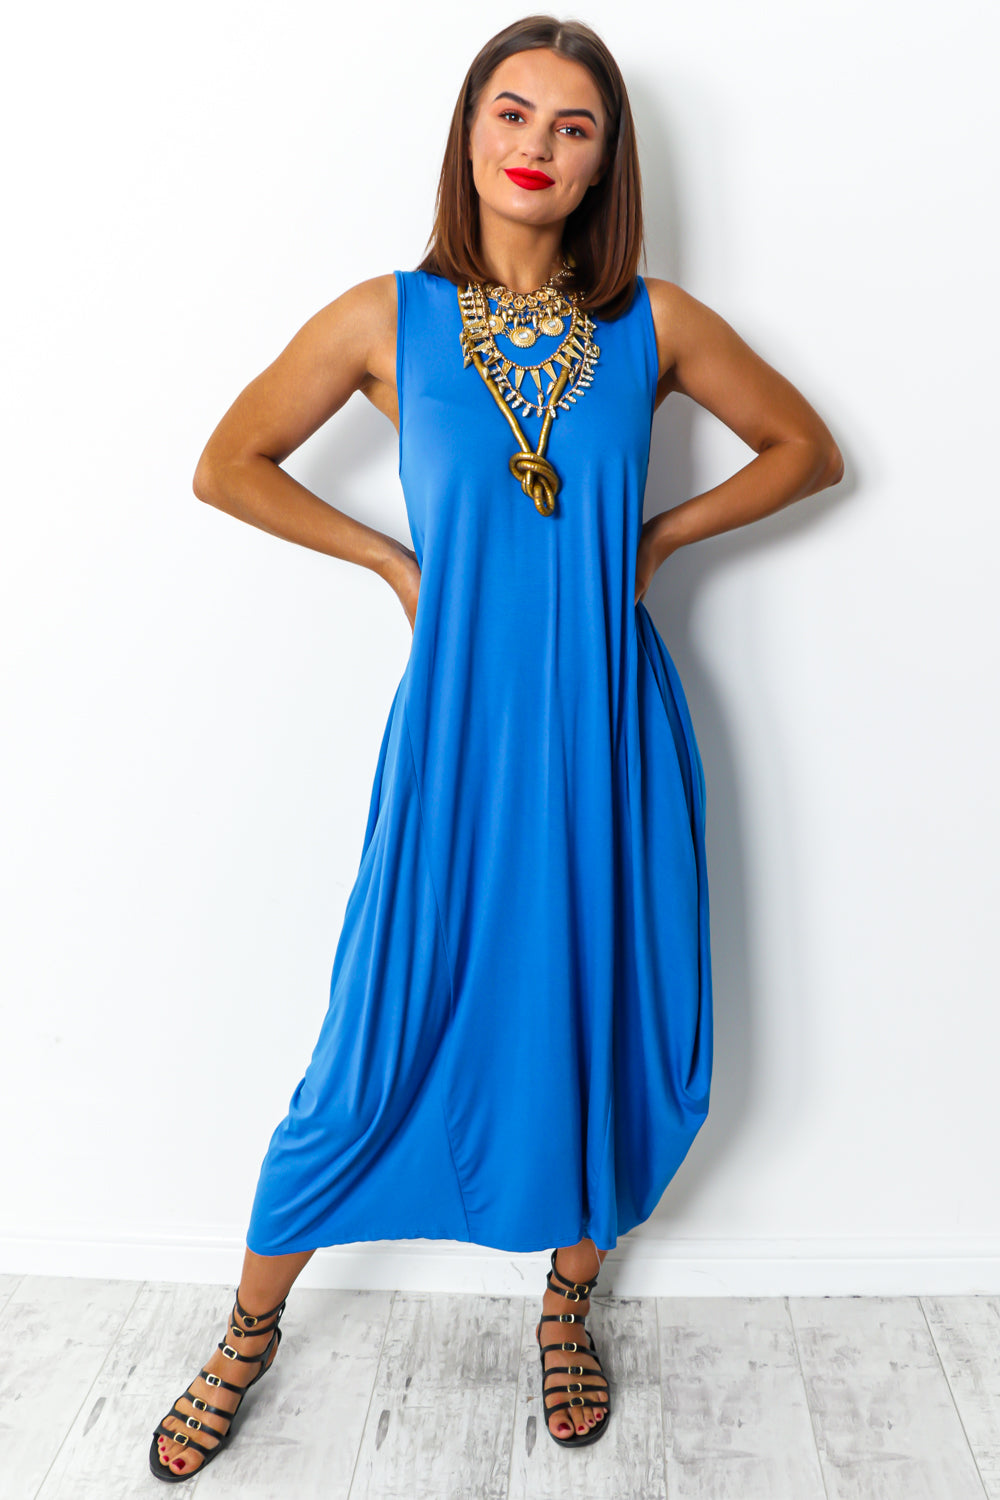 Royal blue tie dye maxi parachute dress